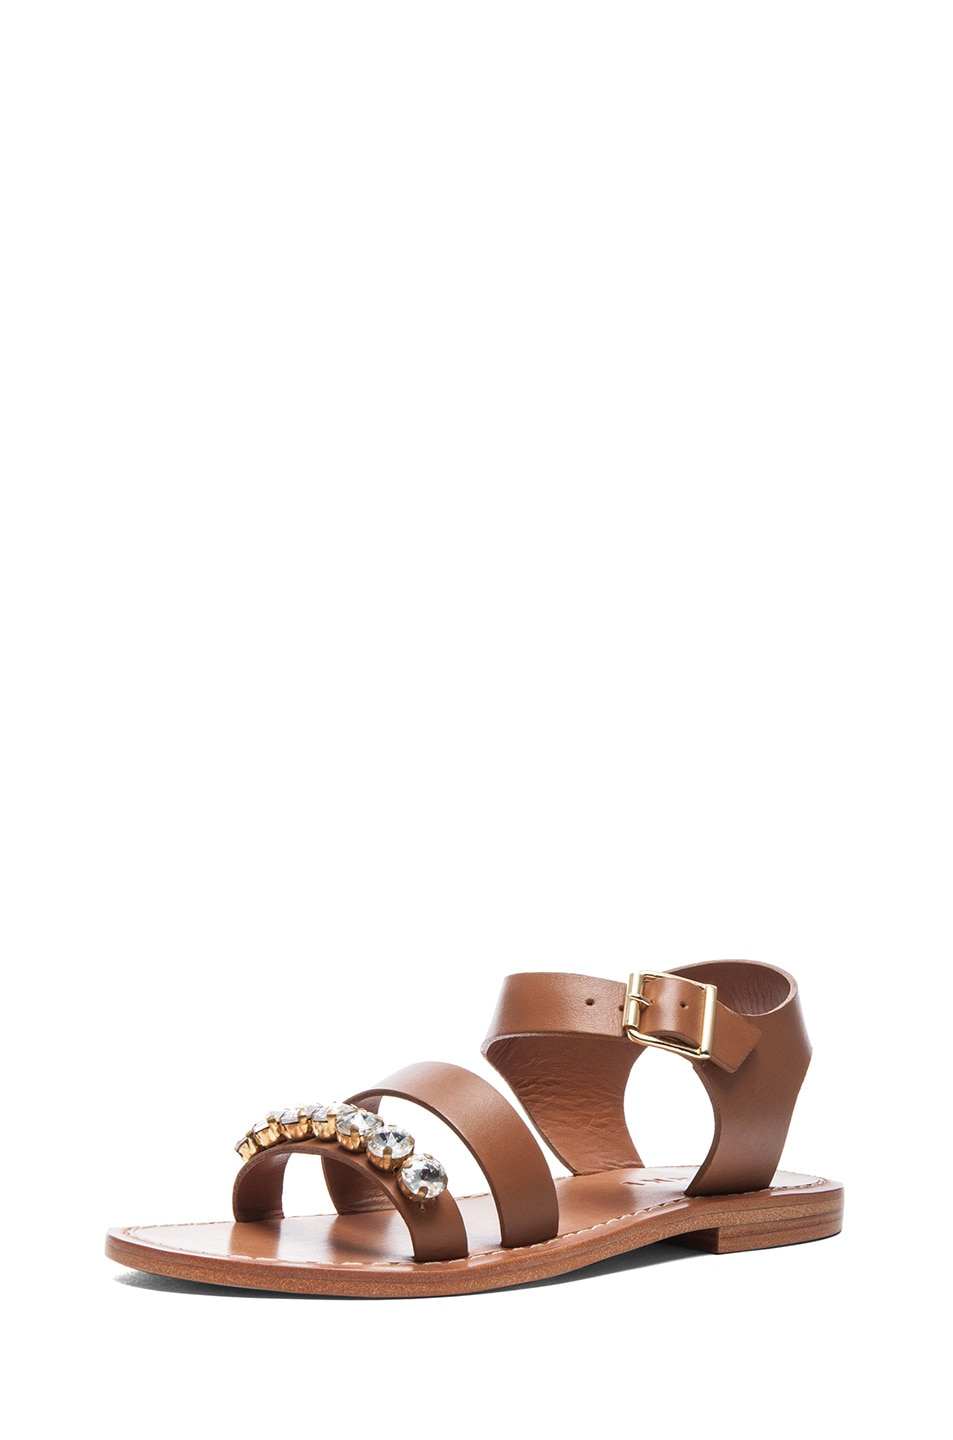 Image 2 of Marni Embellished Leather Sandals with Small Stones in Caramel